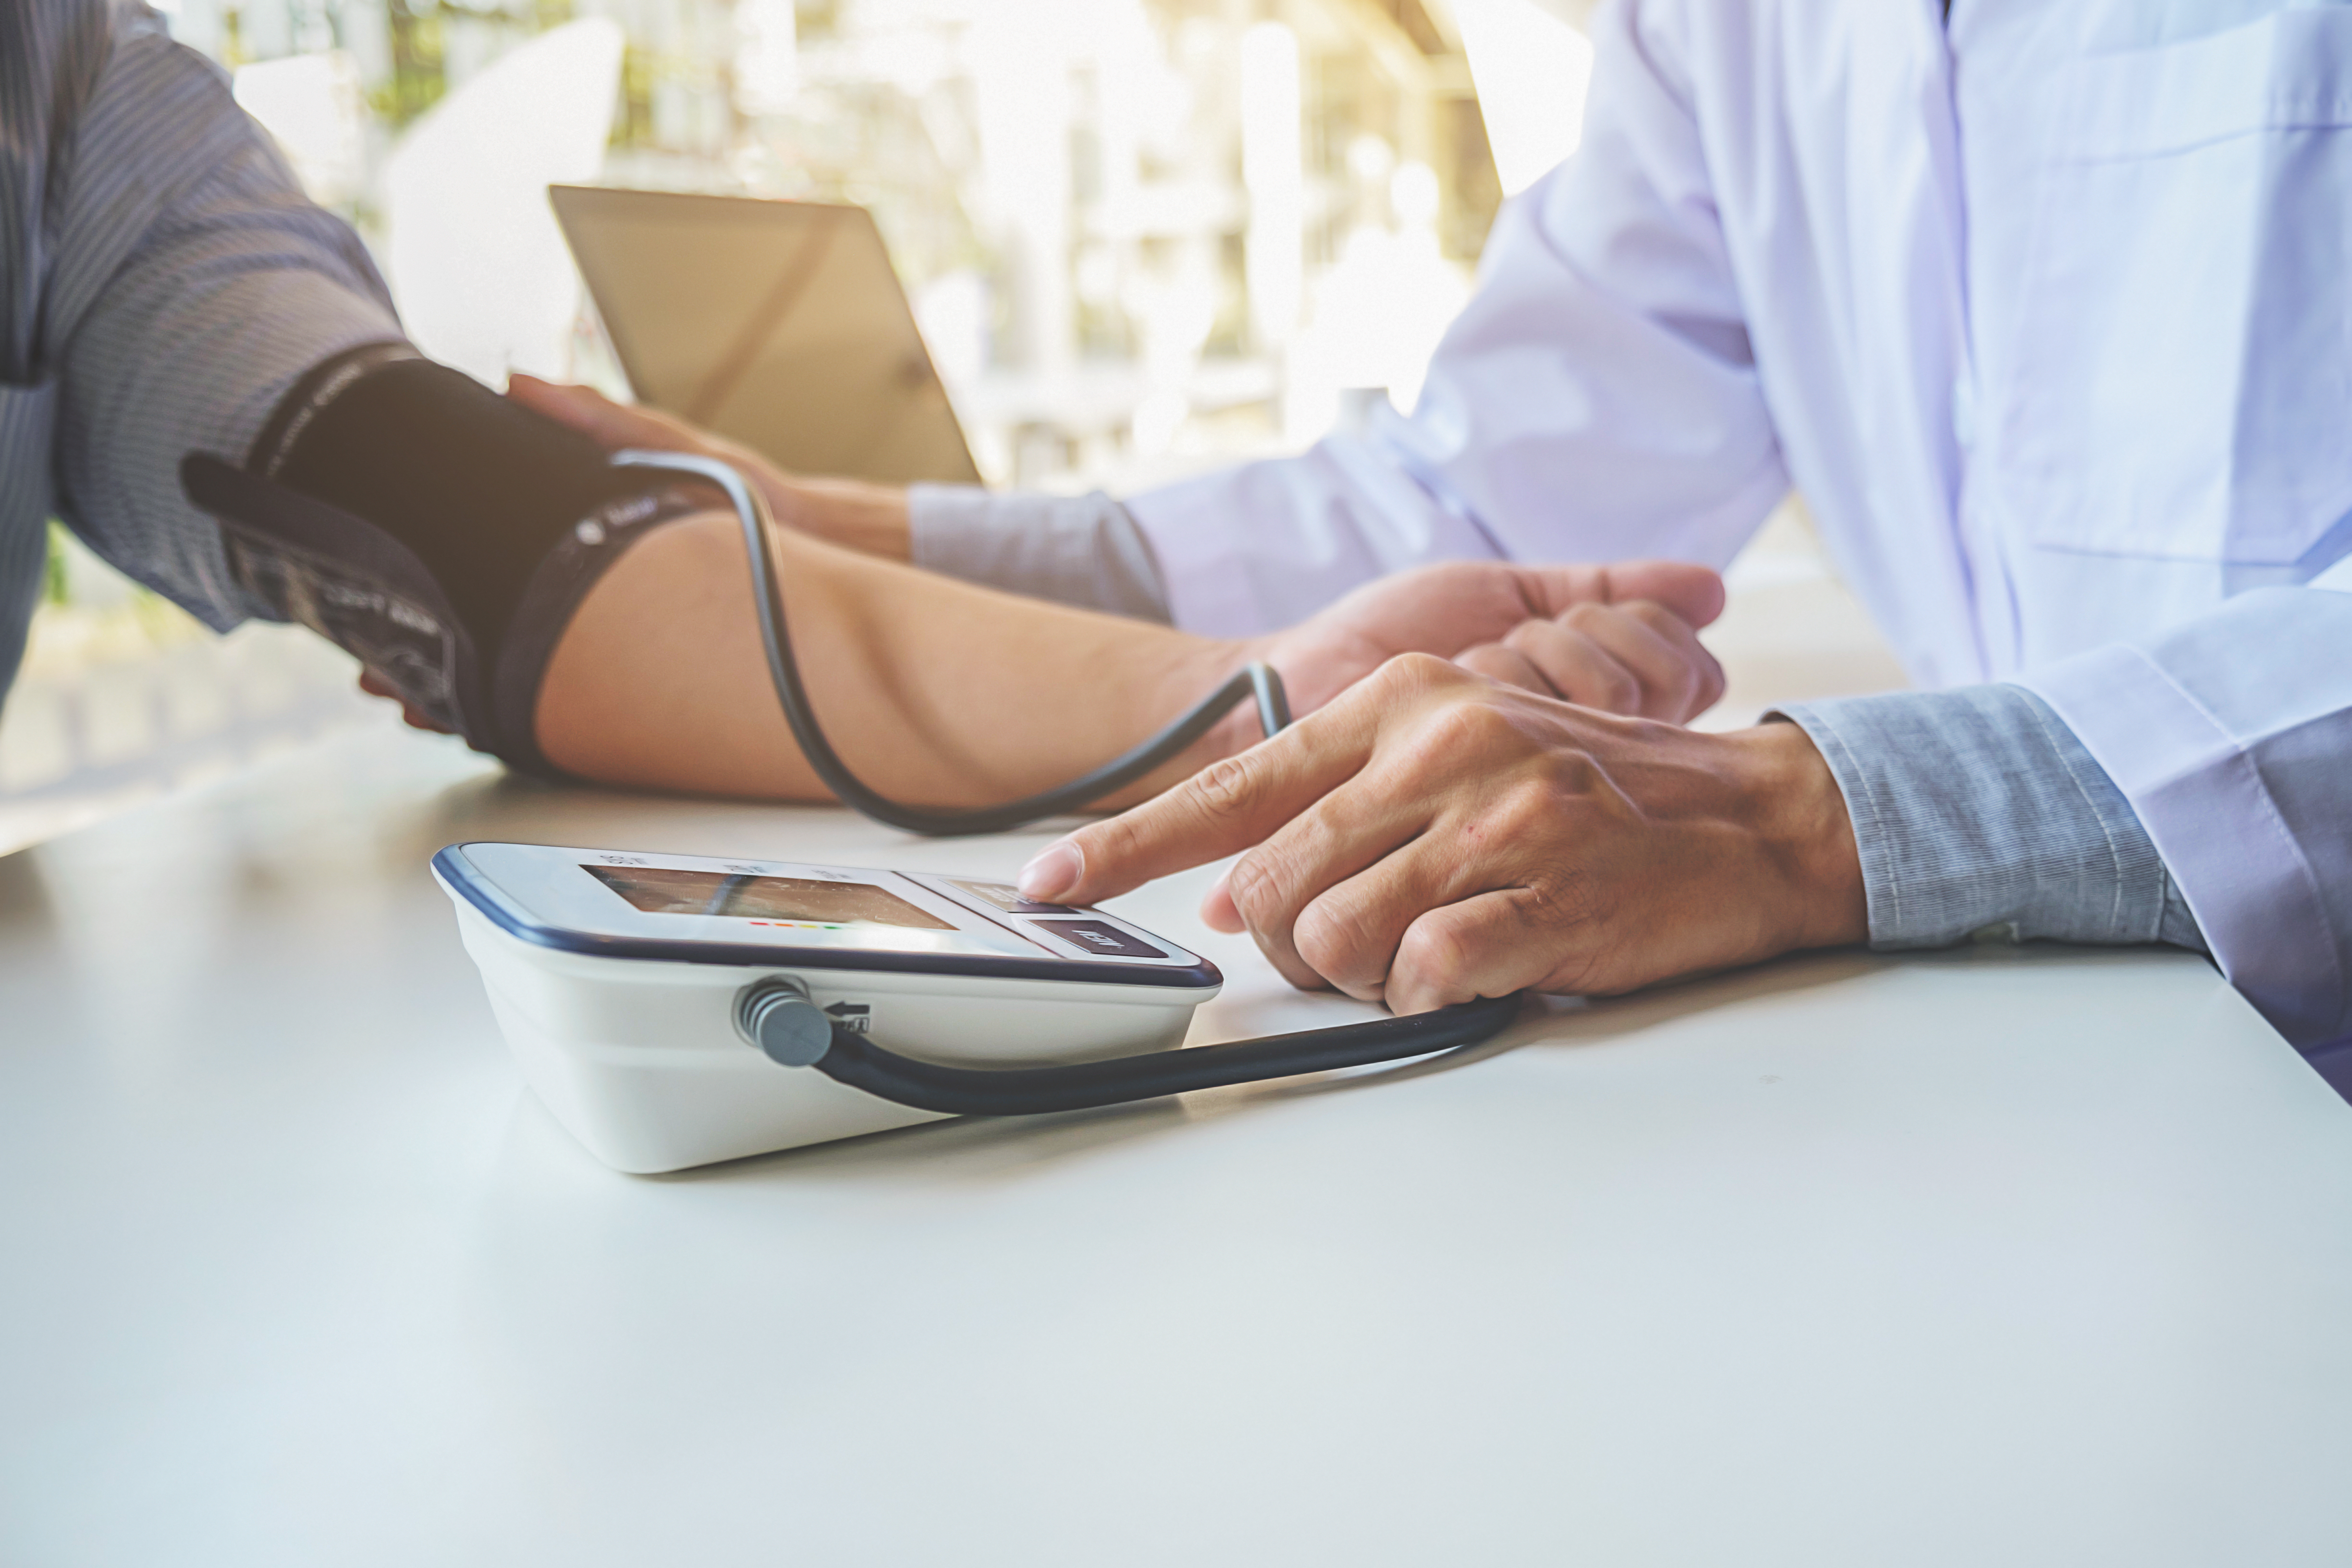 High blood pressure: Causes, symptoms and prevention